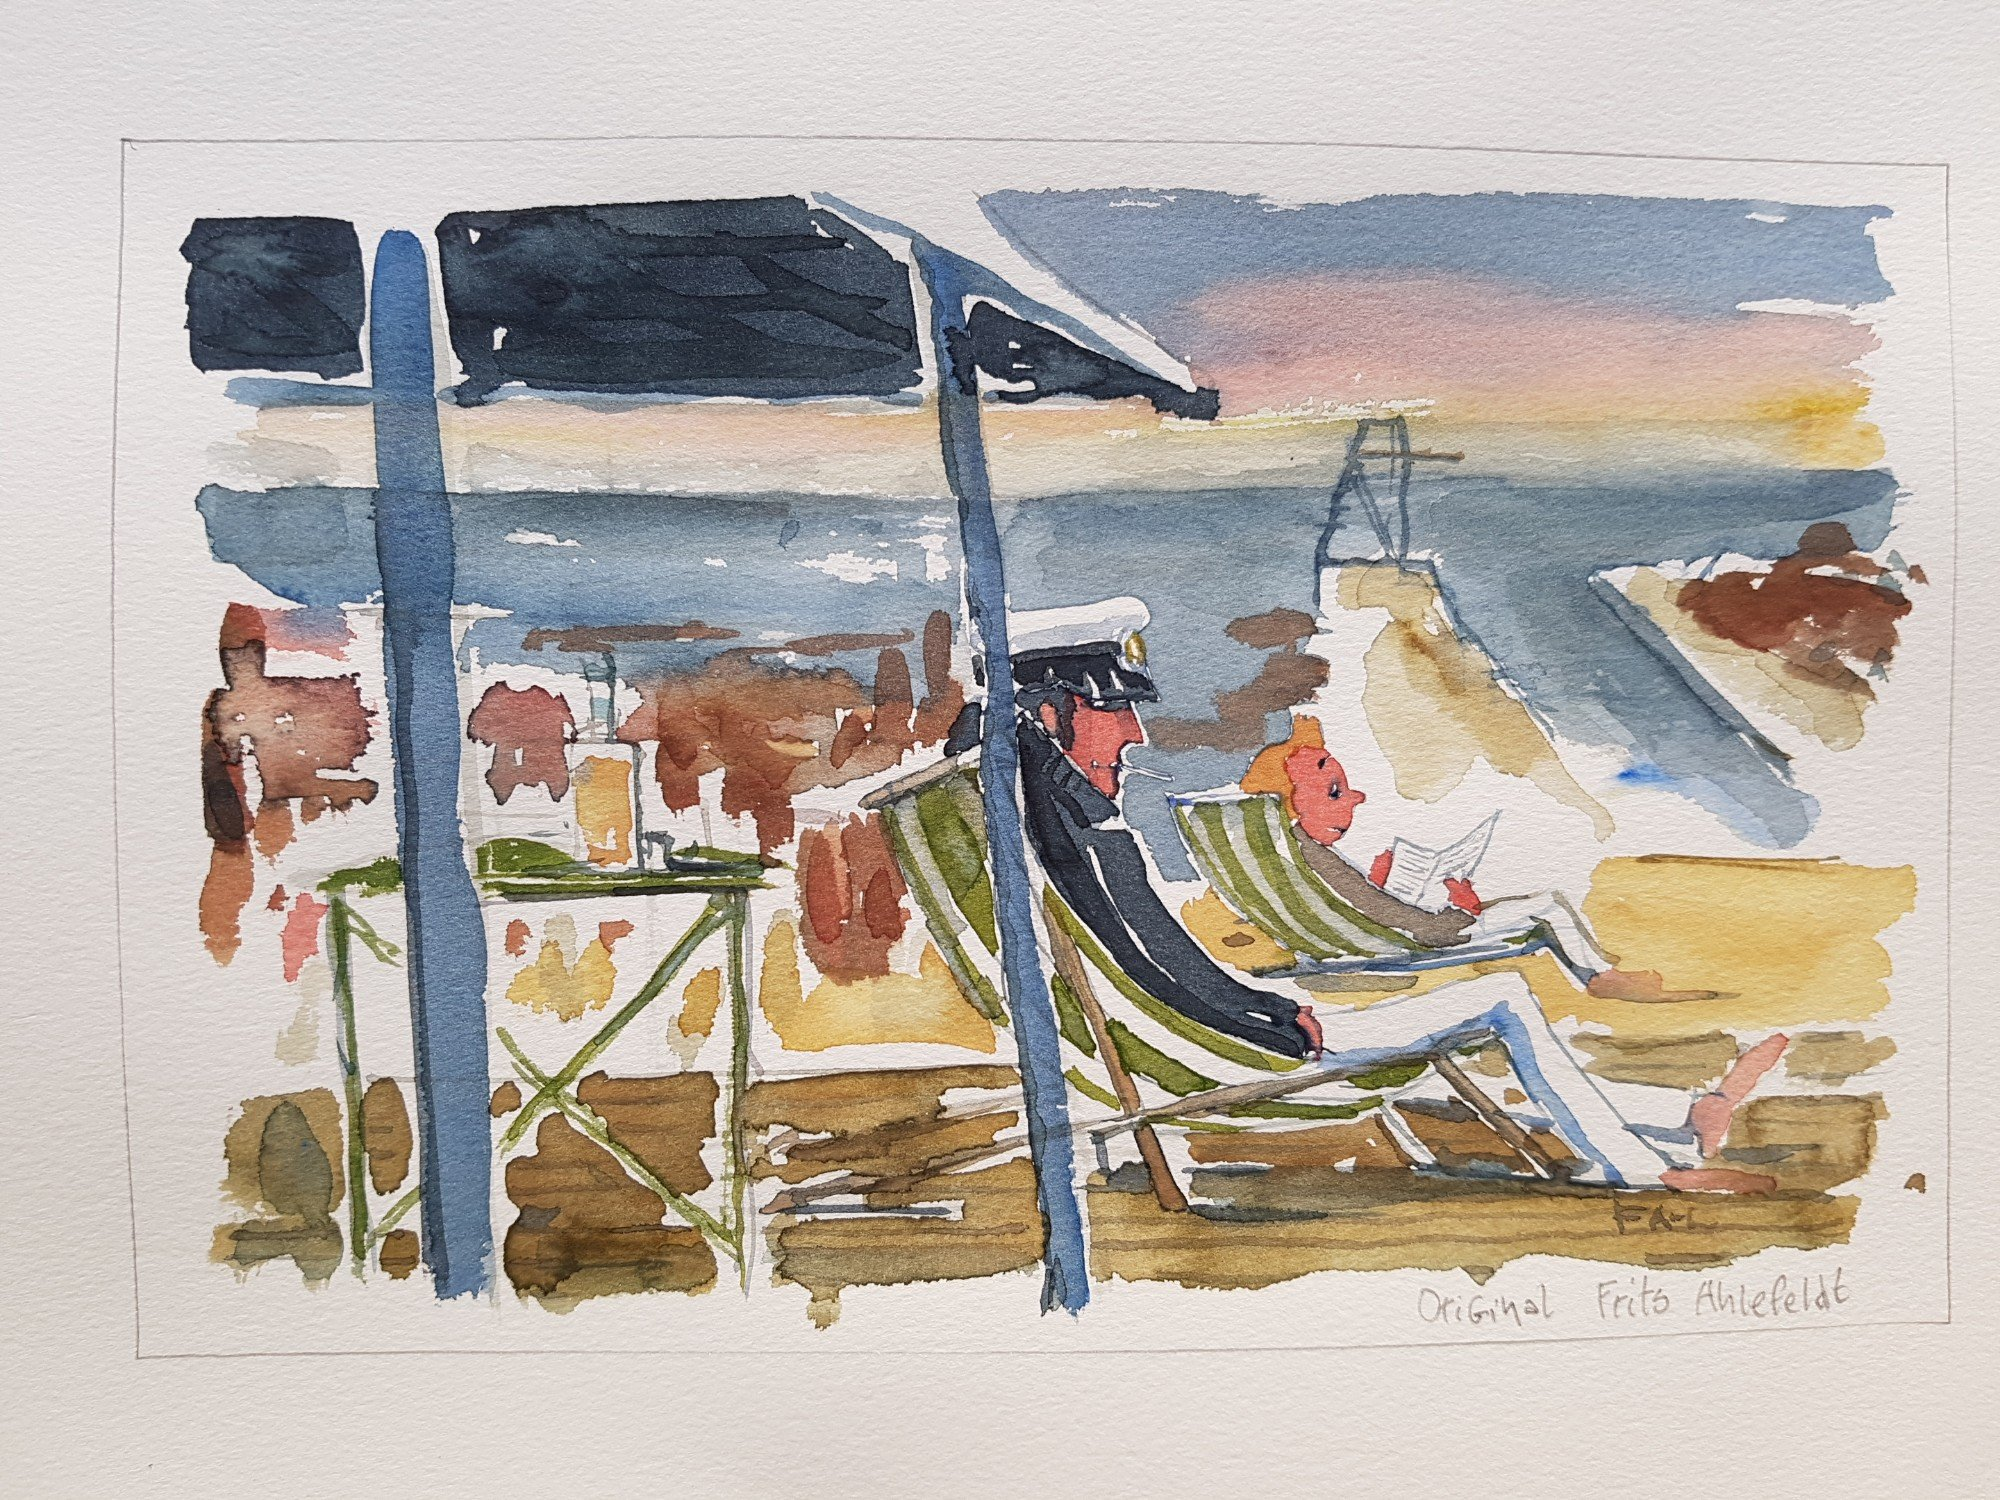 2000x1500 Original Bornholm East Paradise Cafe Watercolor Frits Ahlefeldt